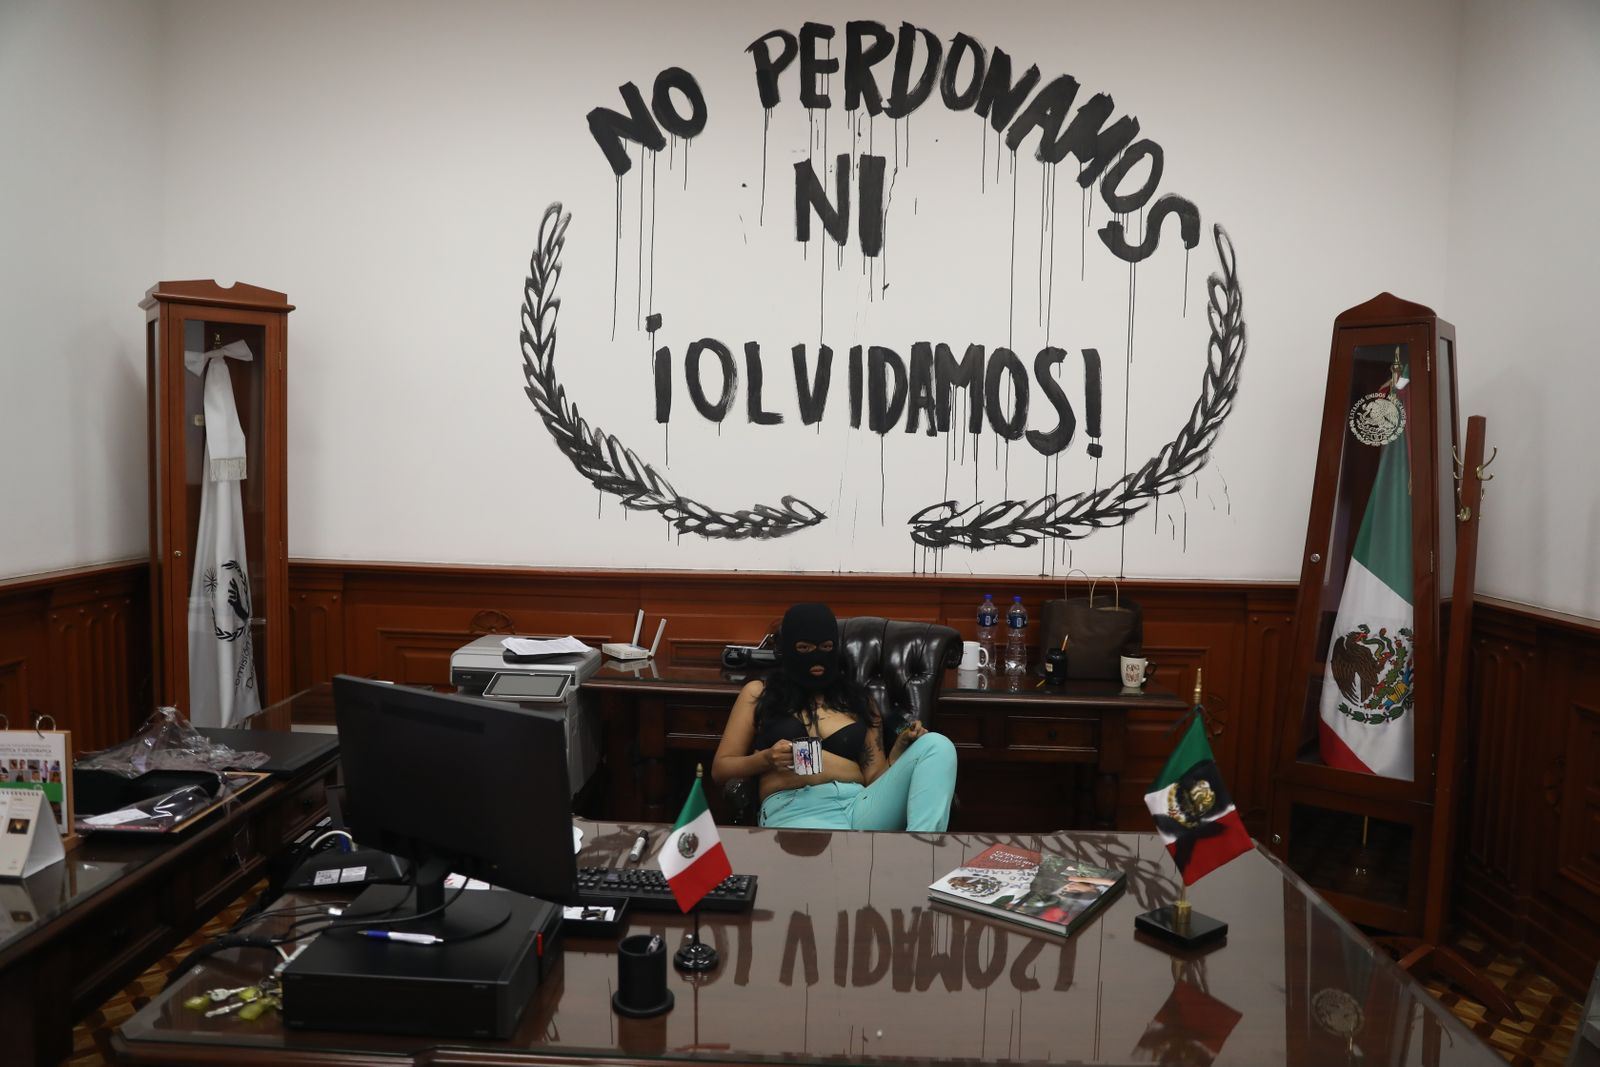 Protest demanding justice in cases of violence against women, in Mexico, Mexico City - 06 Sep 2020